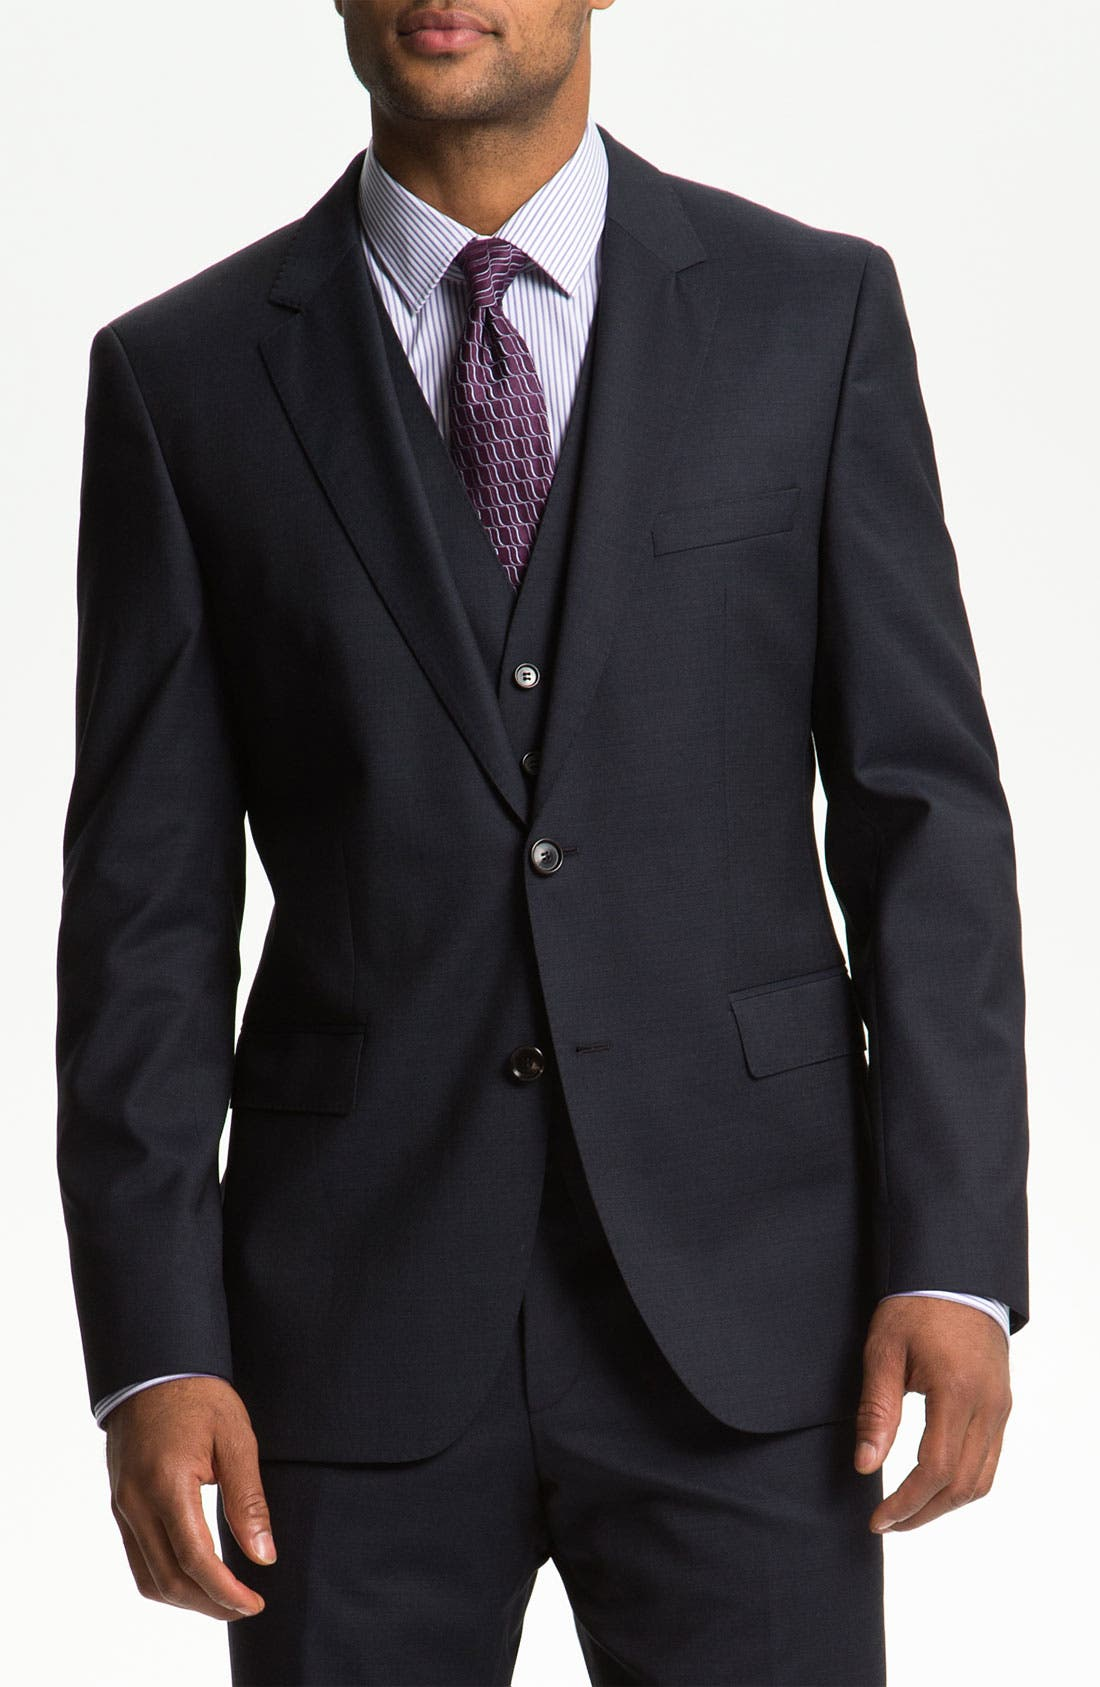 Alternate Image 1 Selected - BOSS Black 'James/Sharp' Trim Fit Three Piece Suit